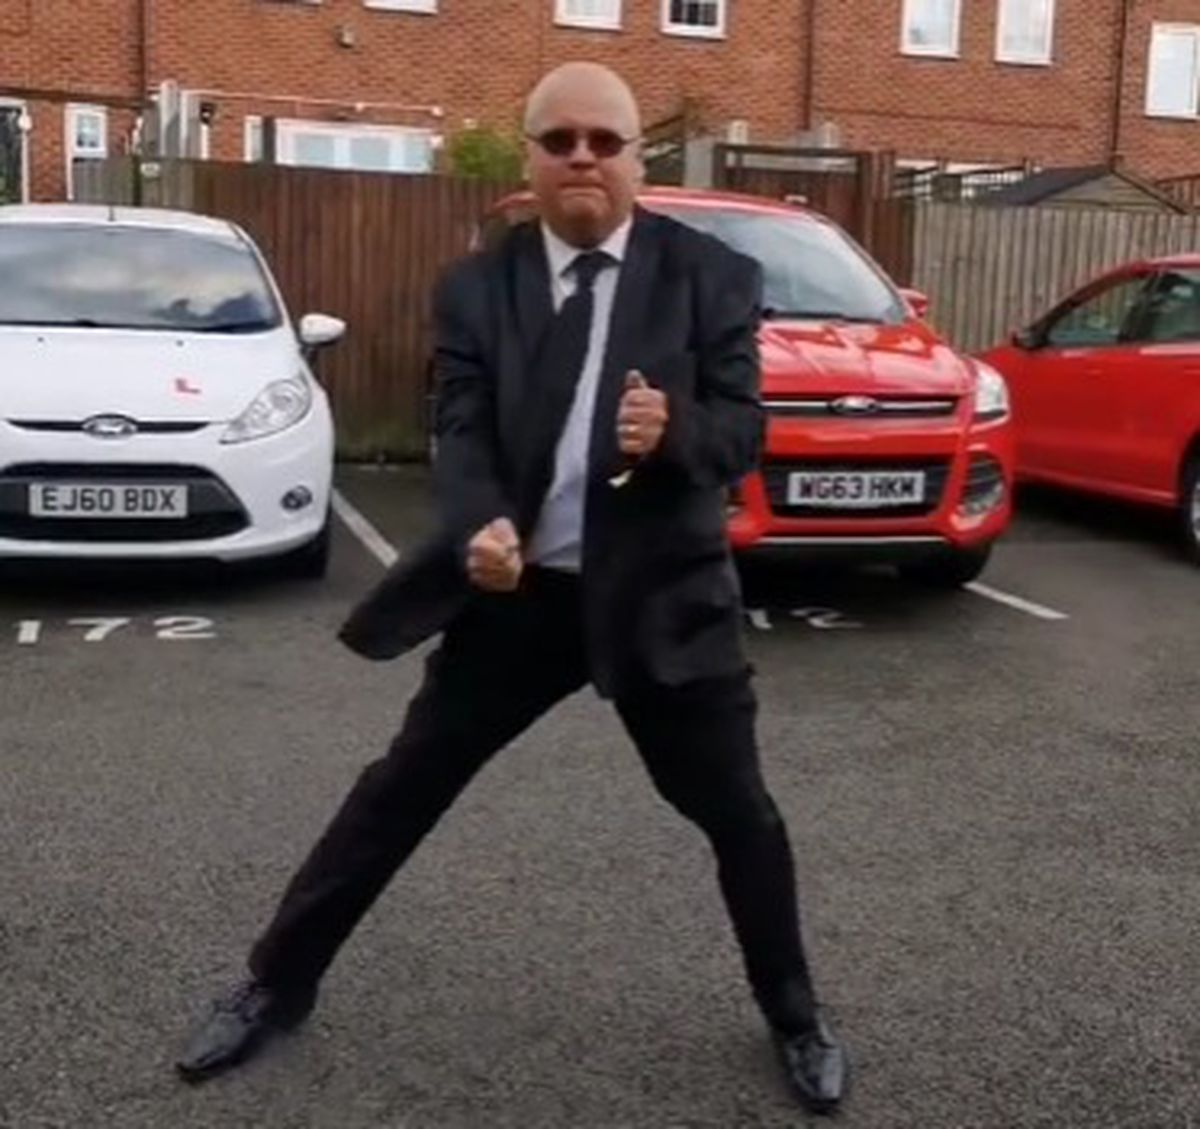 Another video featured him dancing to Men in Black